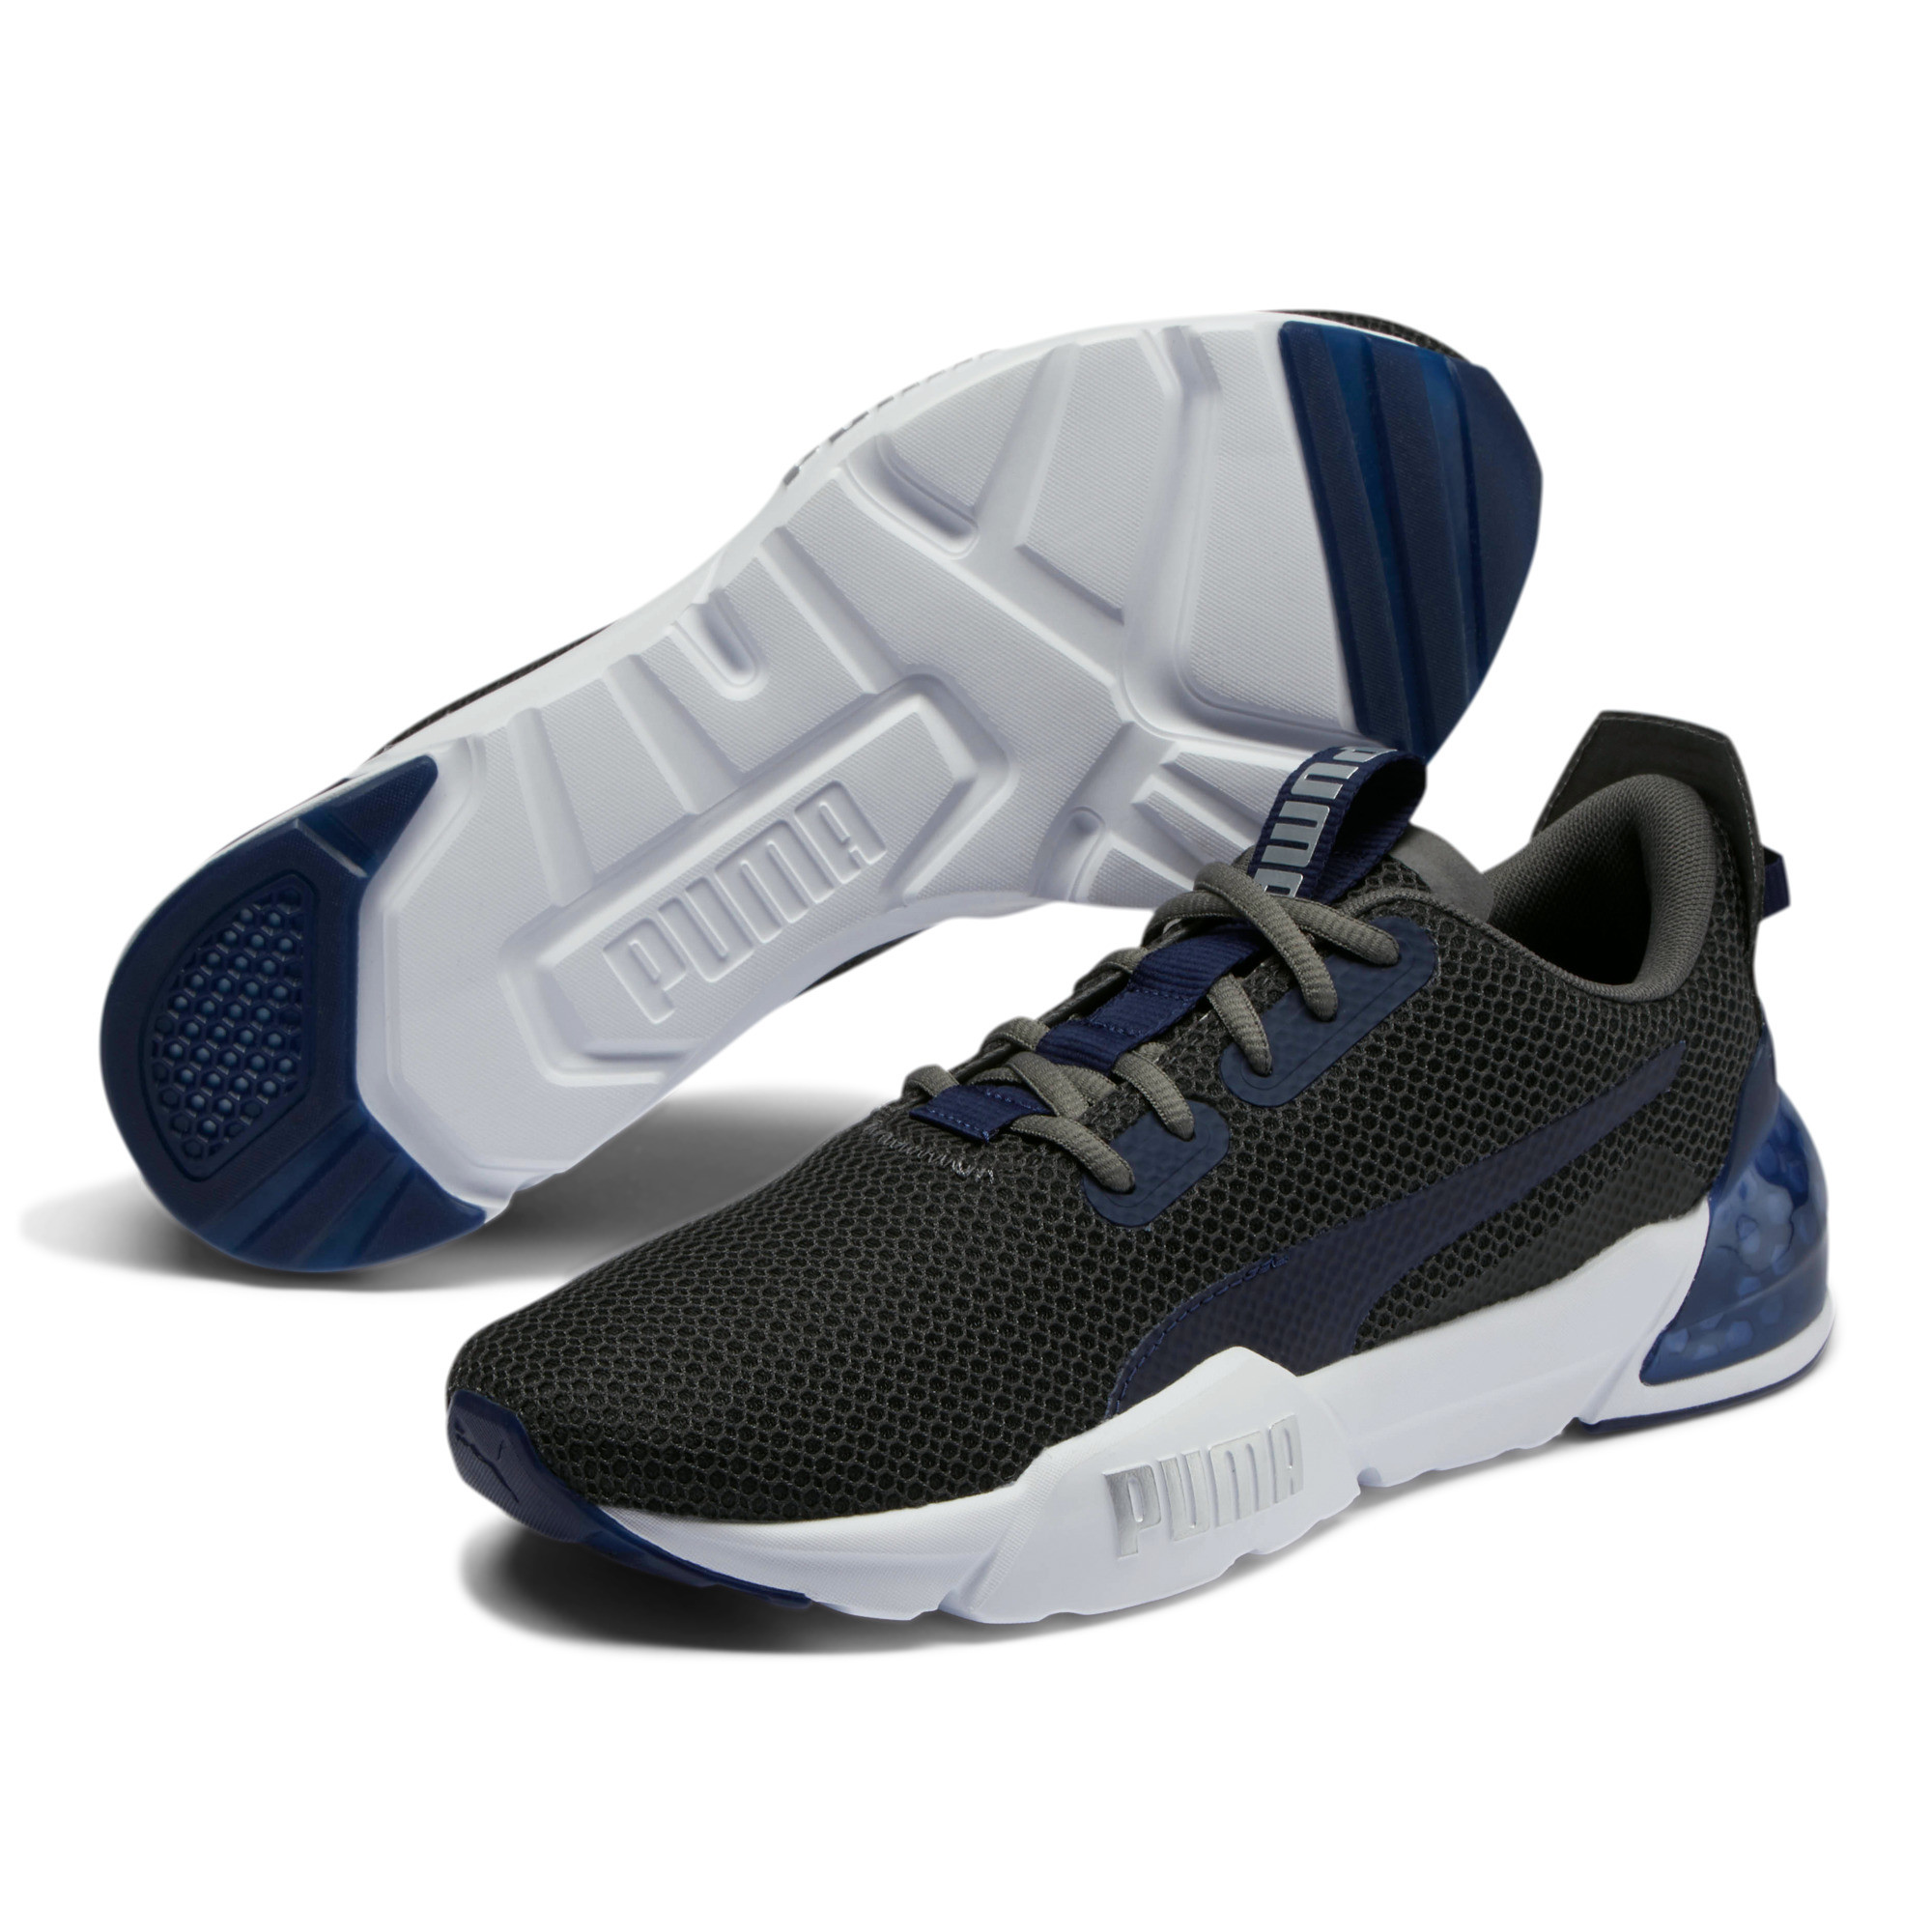 PUMA CELL Phase Frost Men's Training Shoes Men Shoe Running